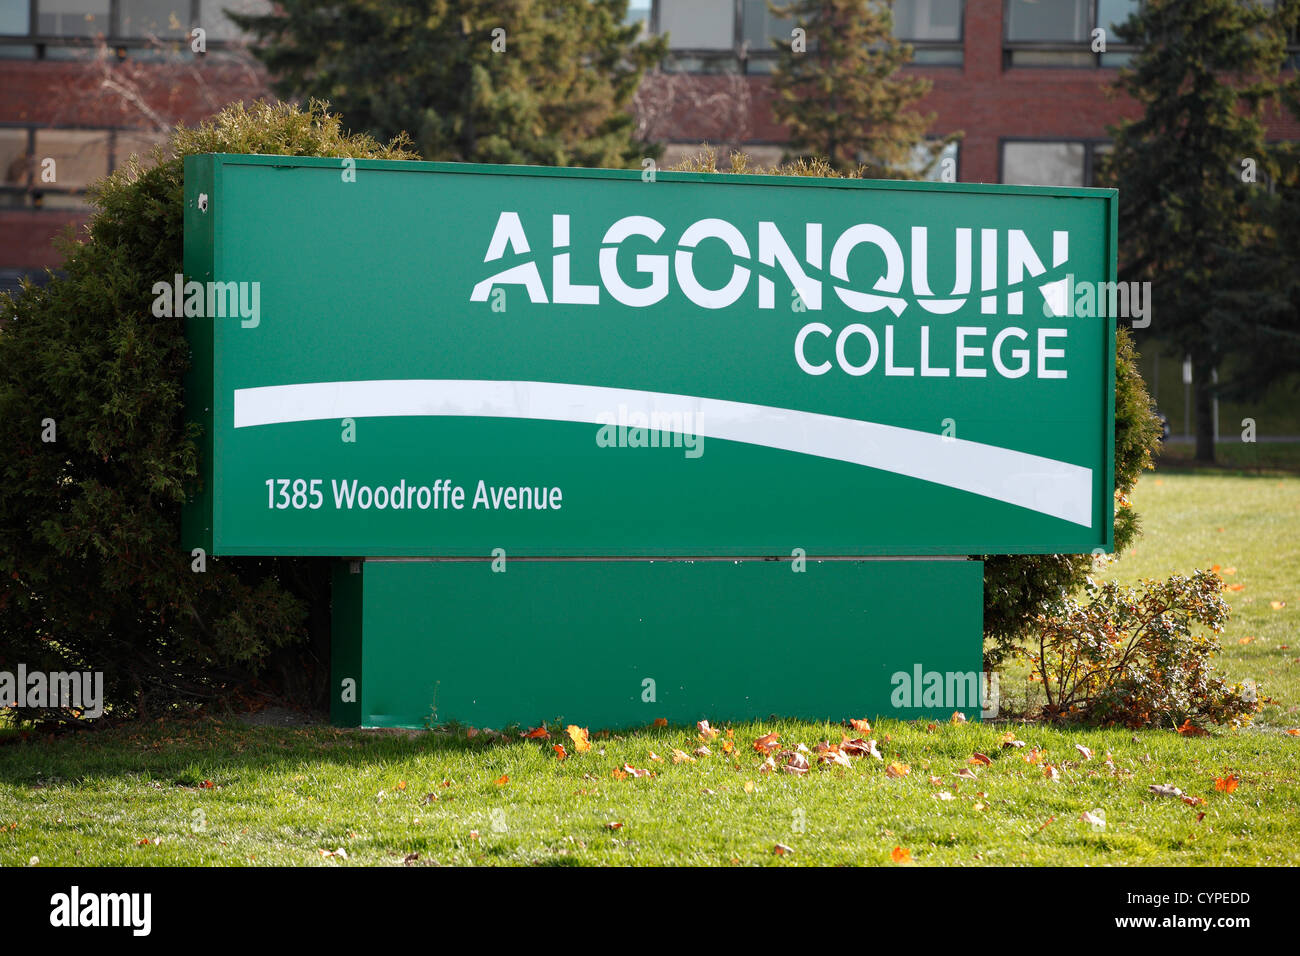 algonquin college sign on their campus in ottawa a algonquin college sign on their campus in ottawa a vocational college teaching trades and occupational skills